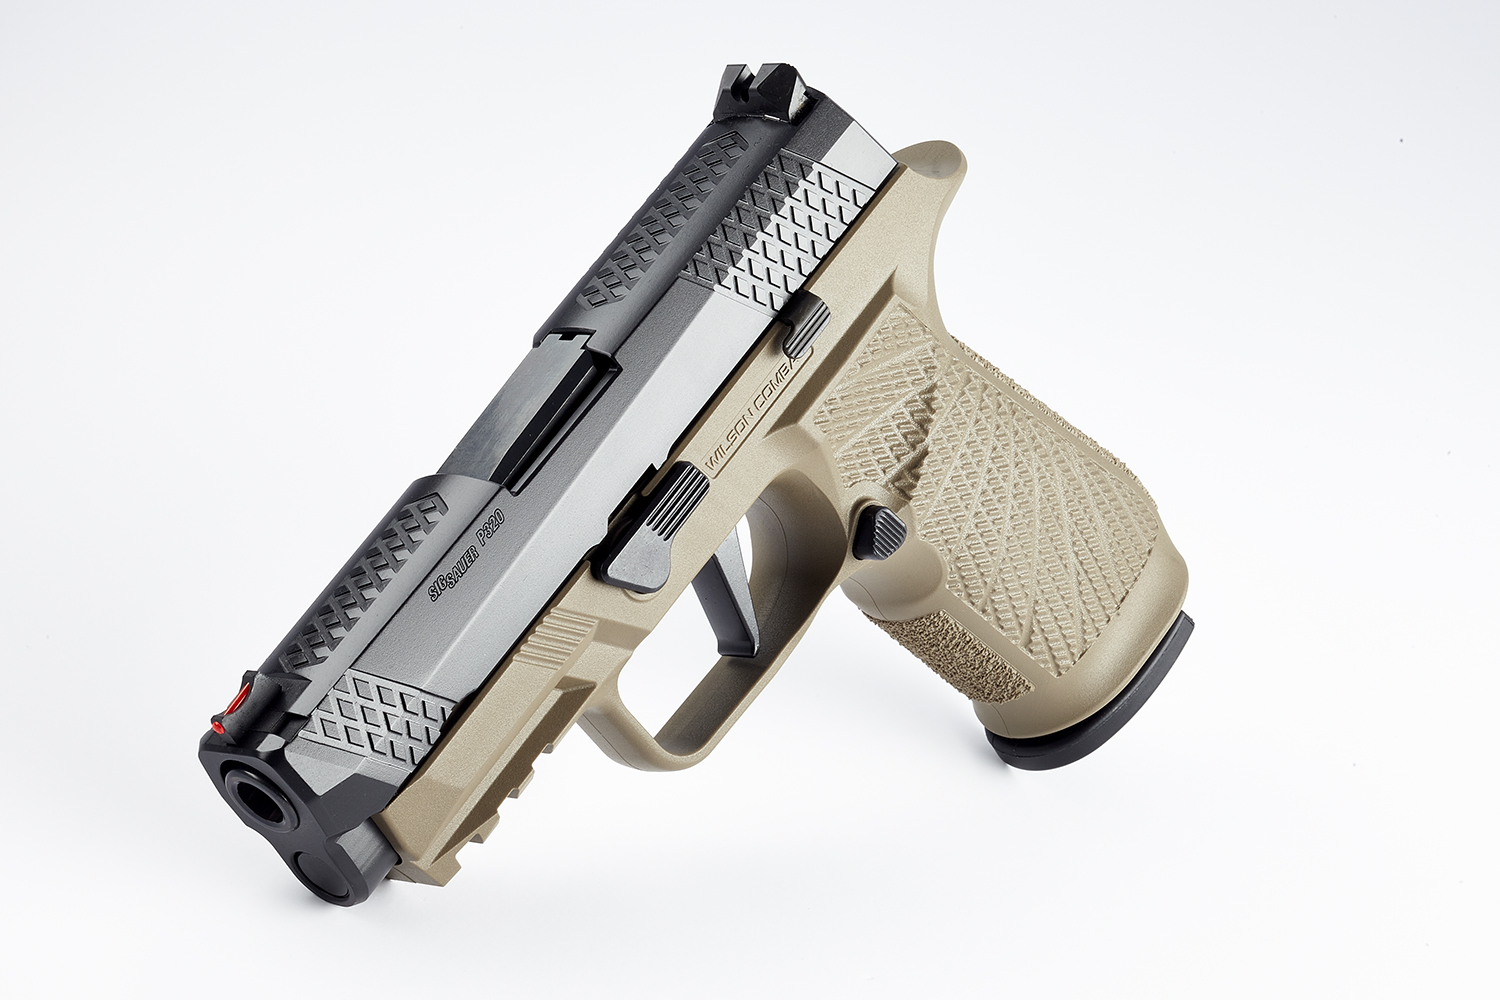 WCP320 CARRY Pistol by Wilson Combat and SIG Sauer (14)